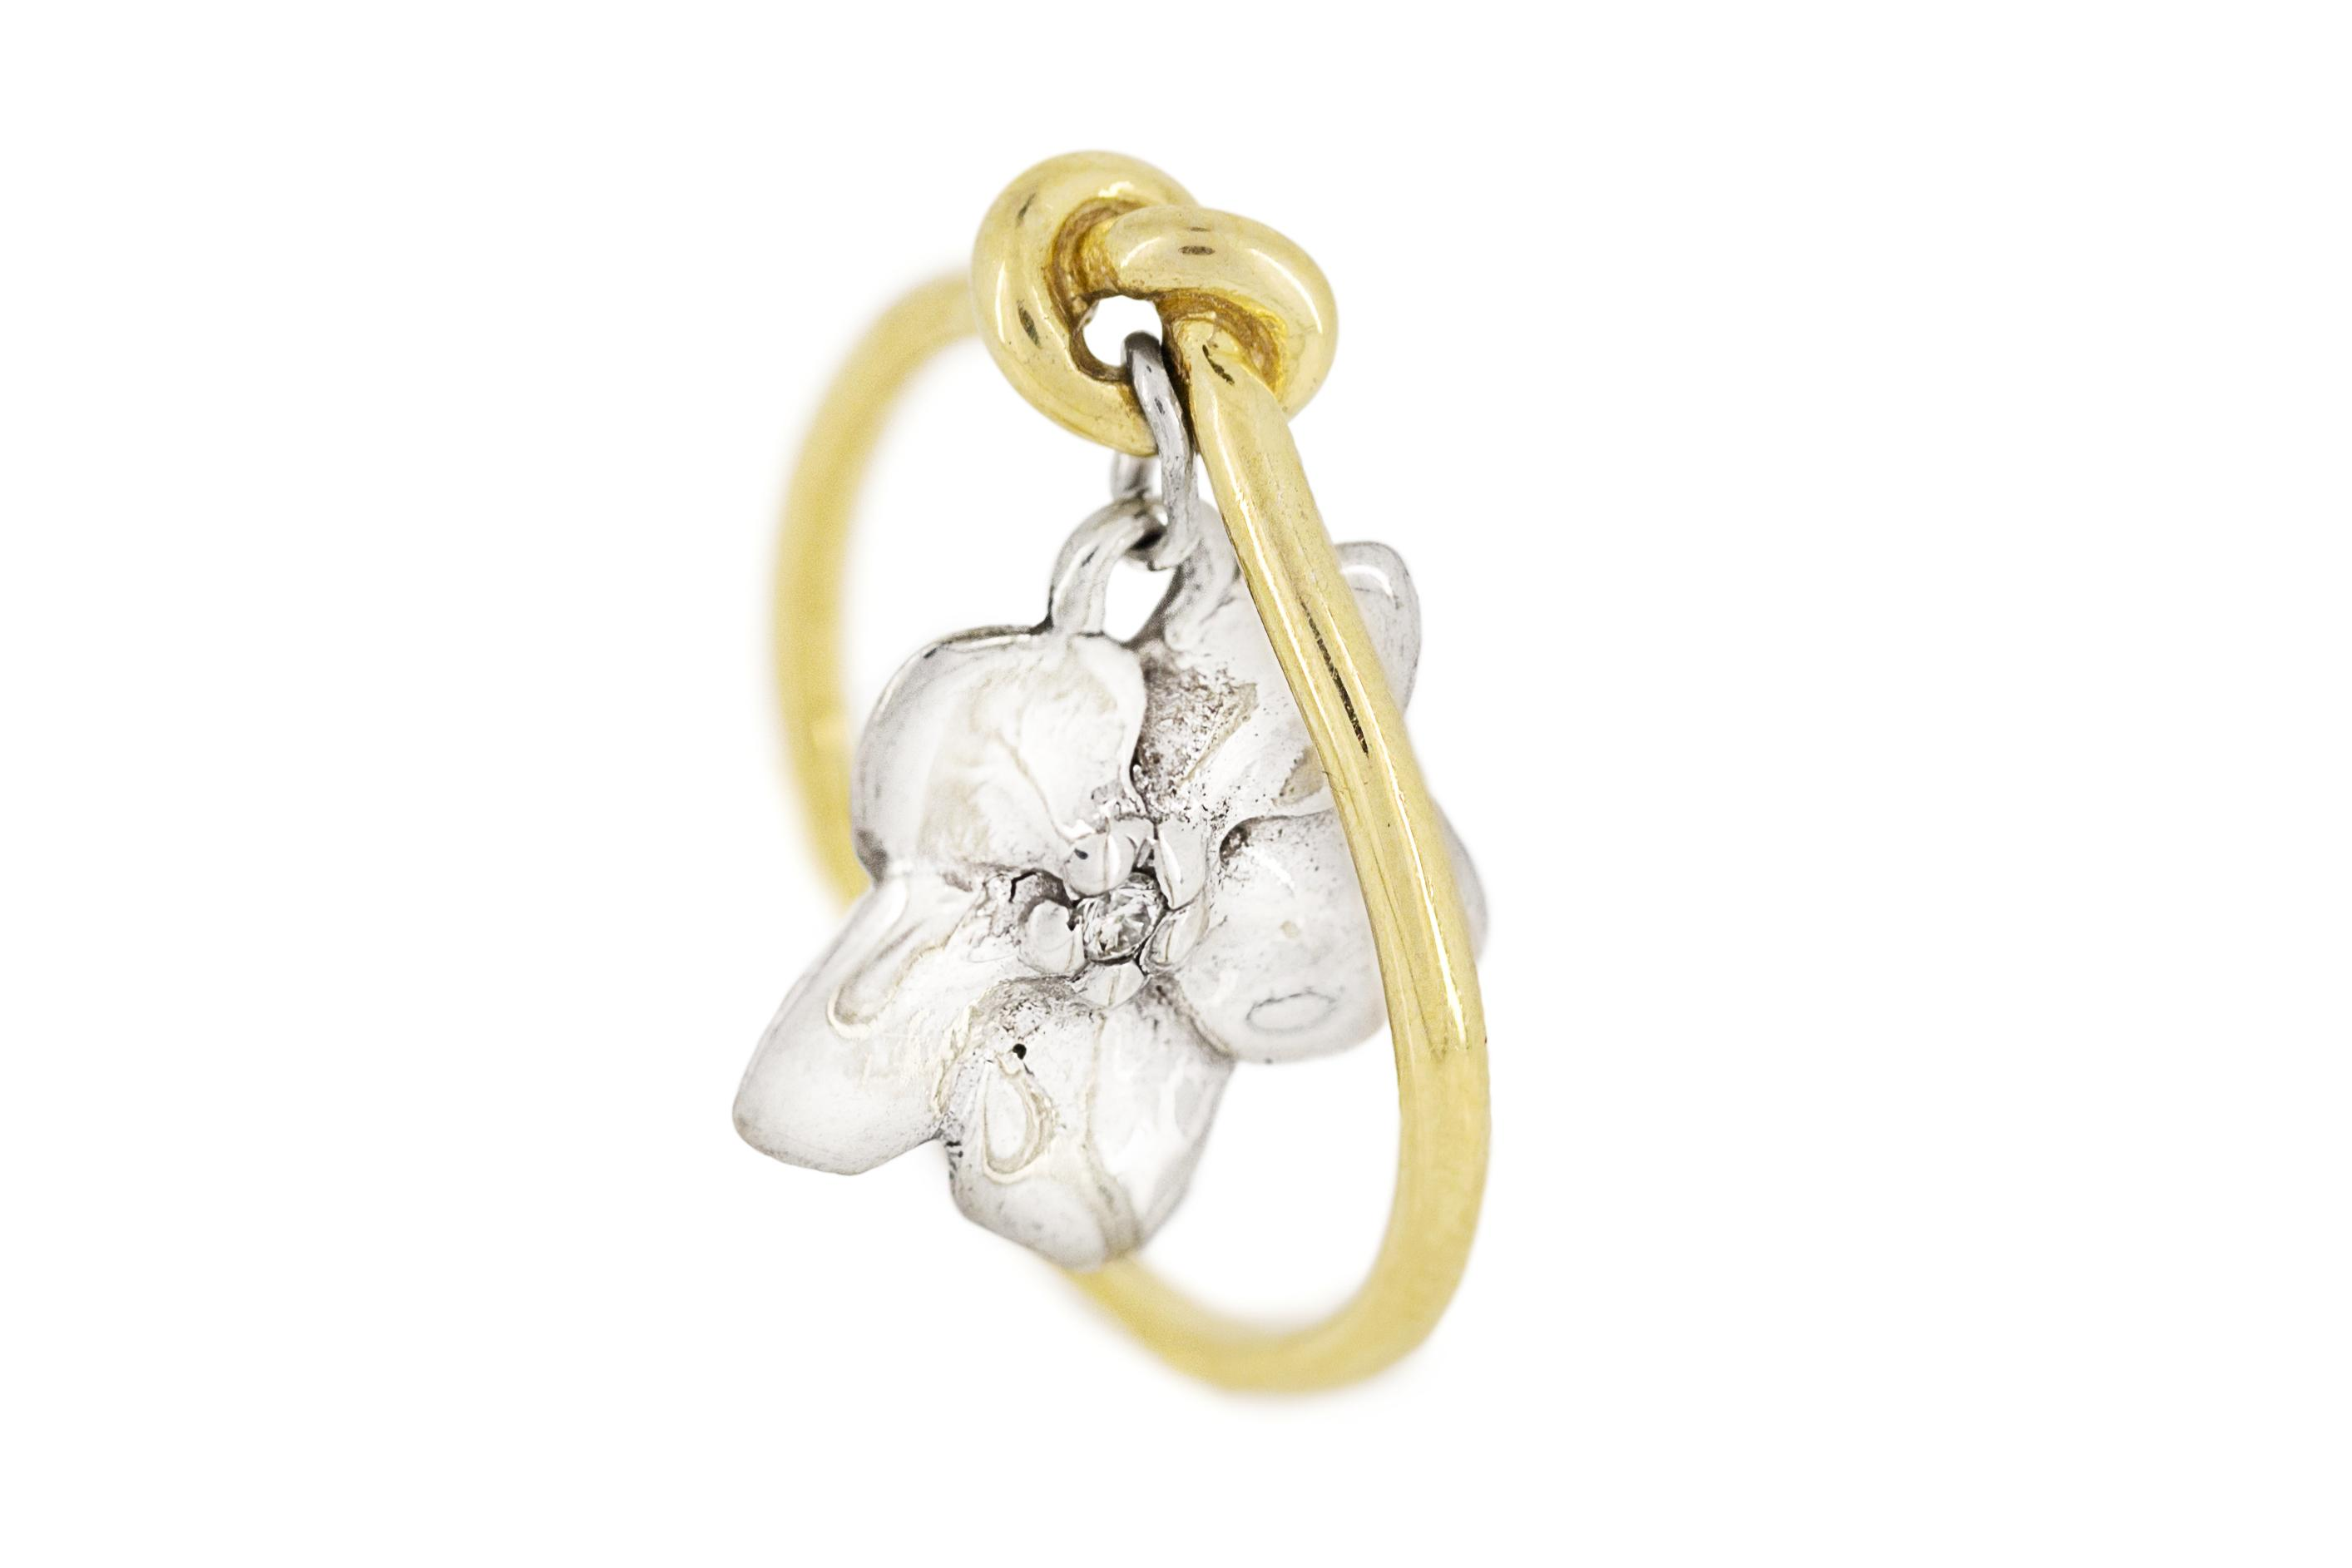 18ct Yellow Gold and Silver 'Forget-Me-Knot' Diamond Ring